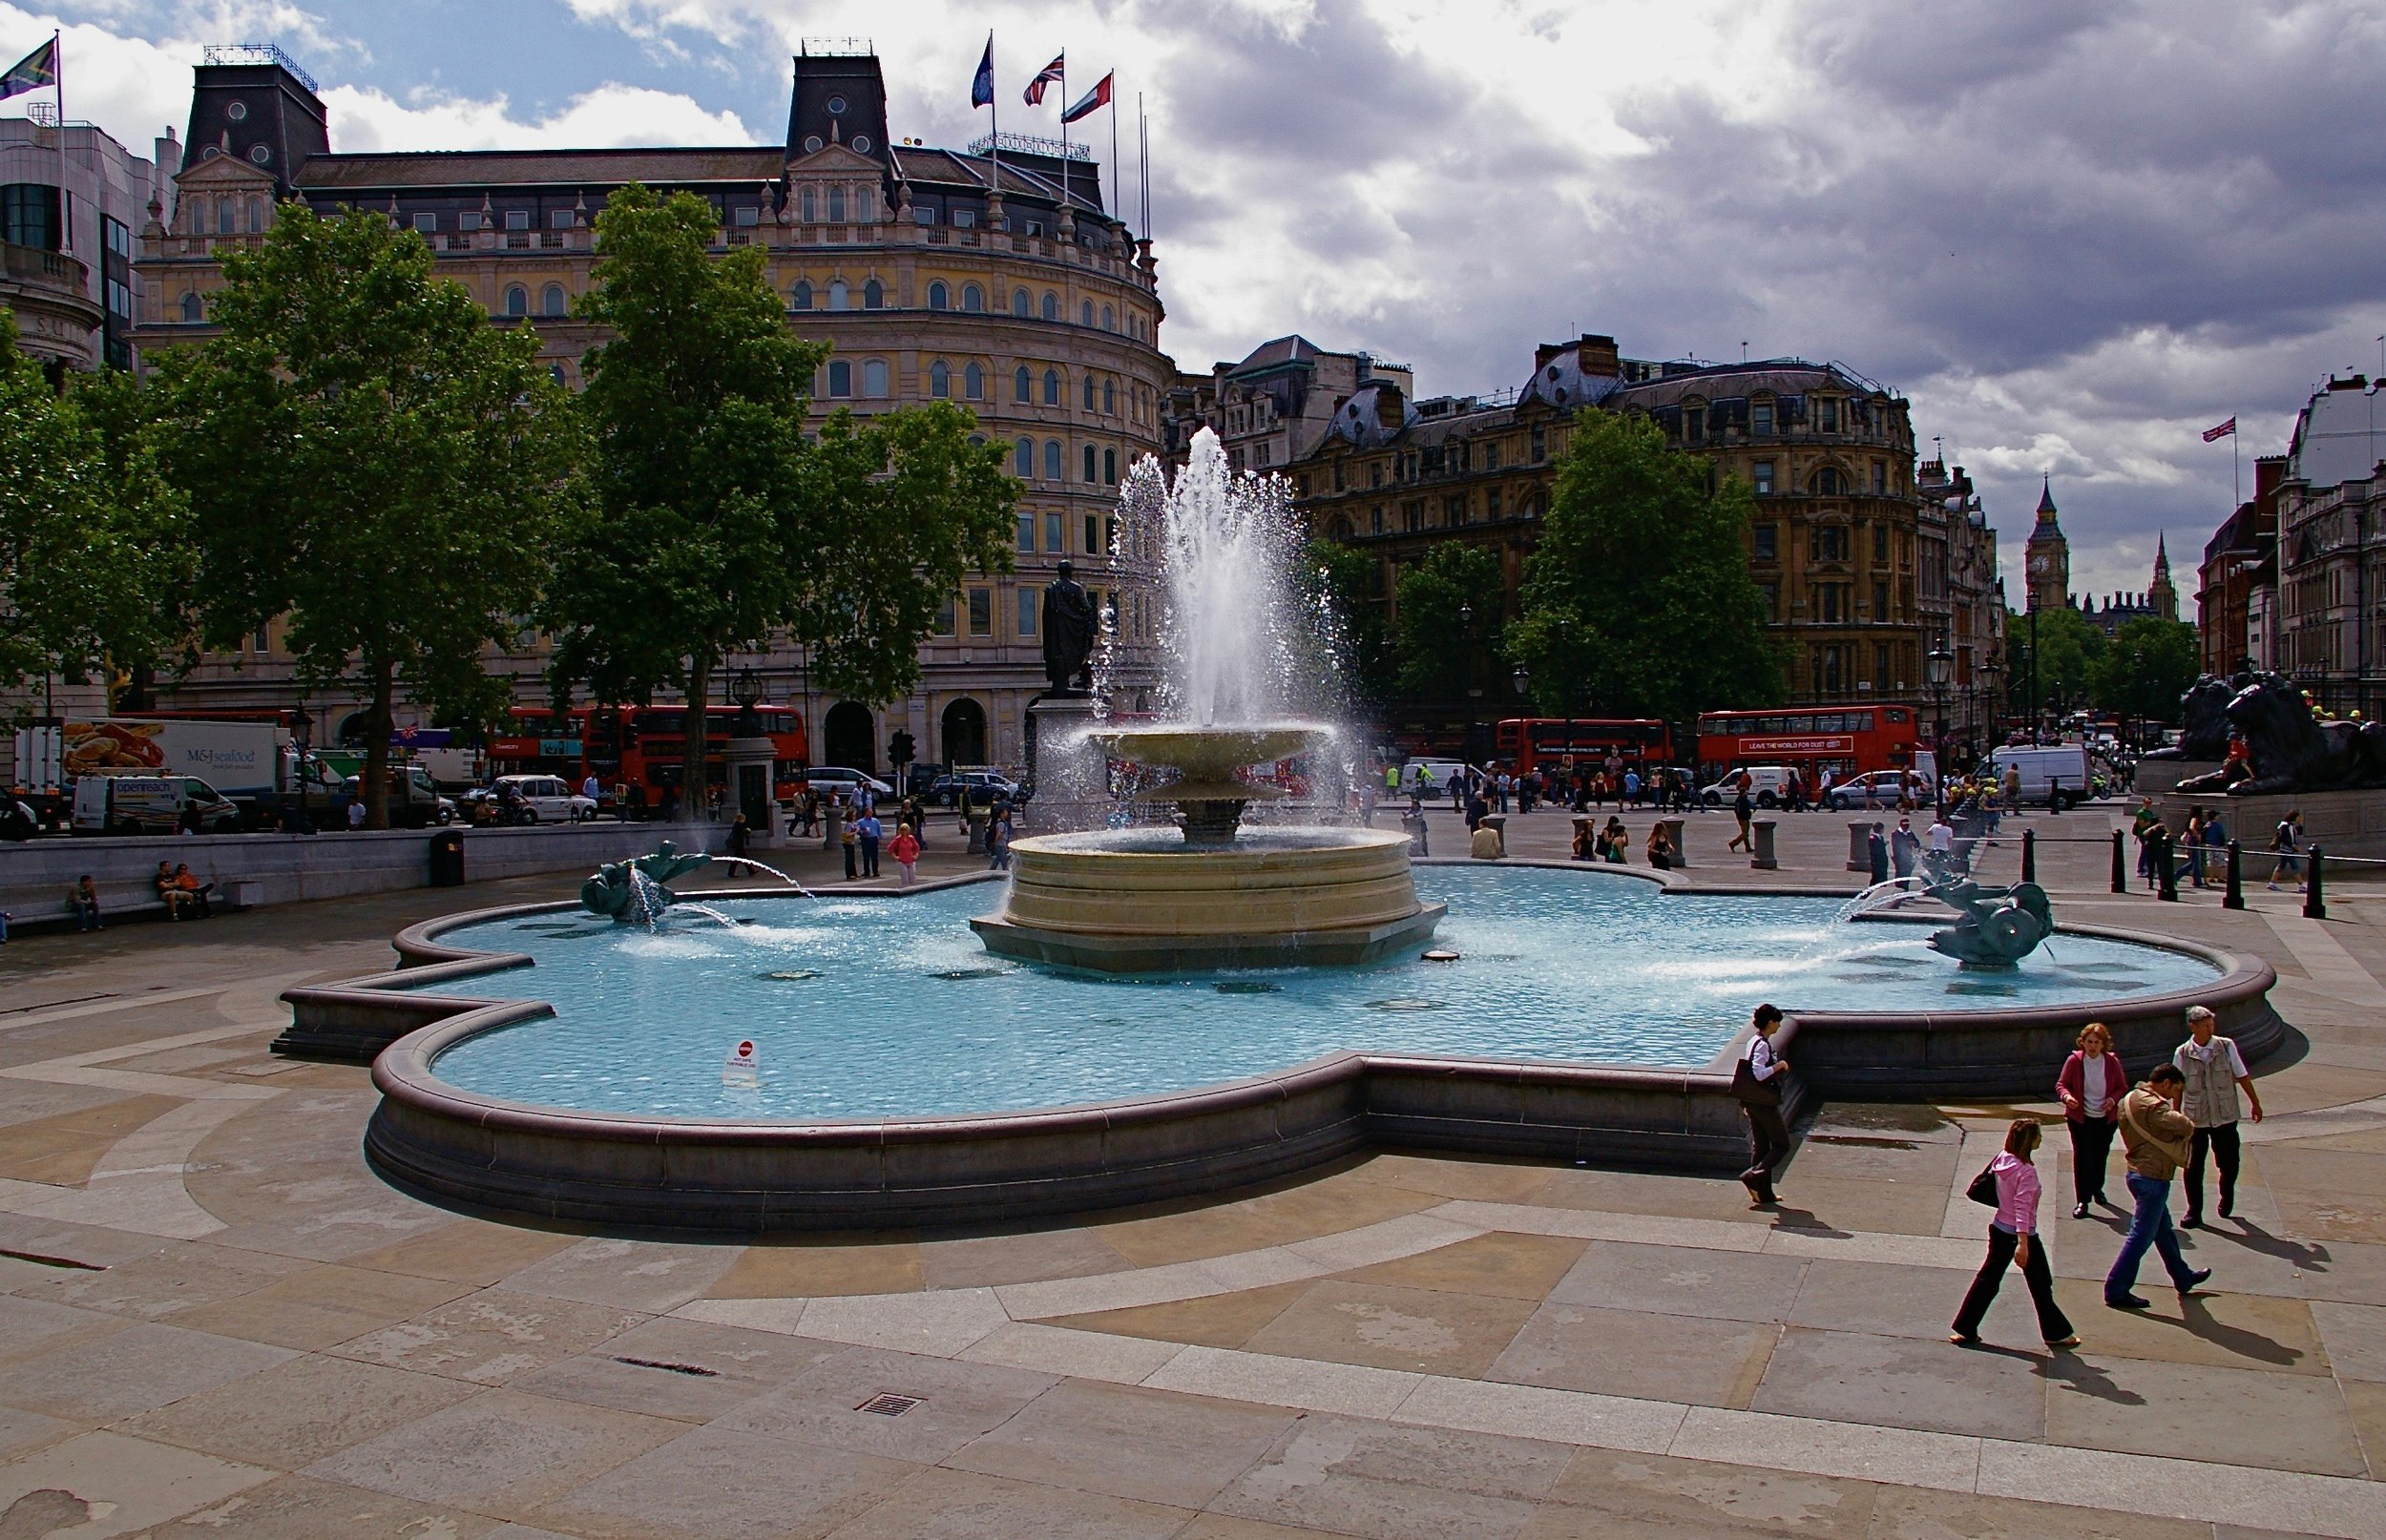 One of my fave spots in London, Trafalgar Square.